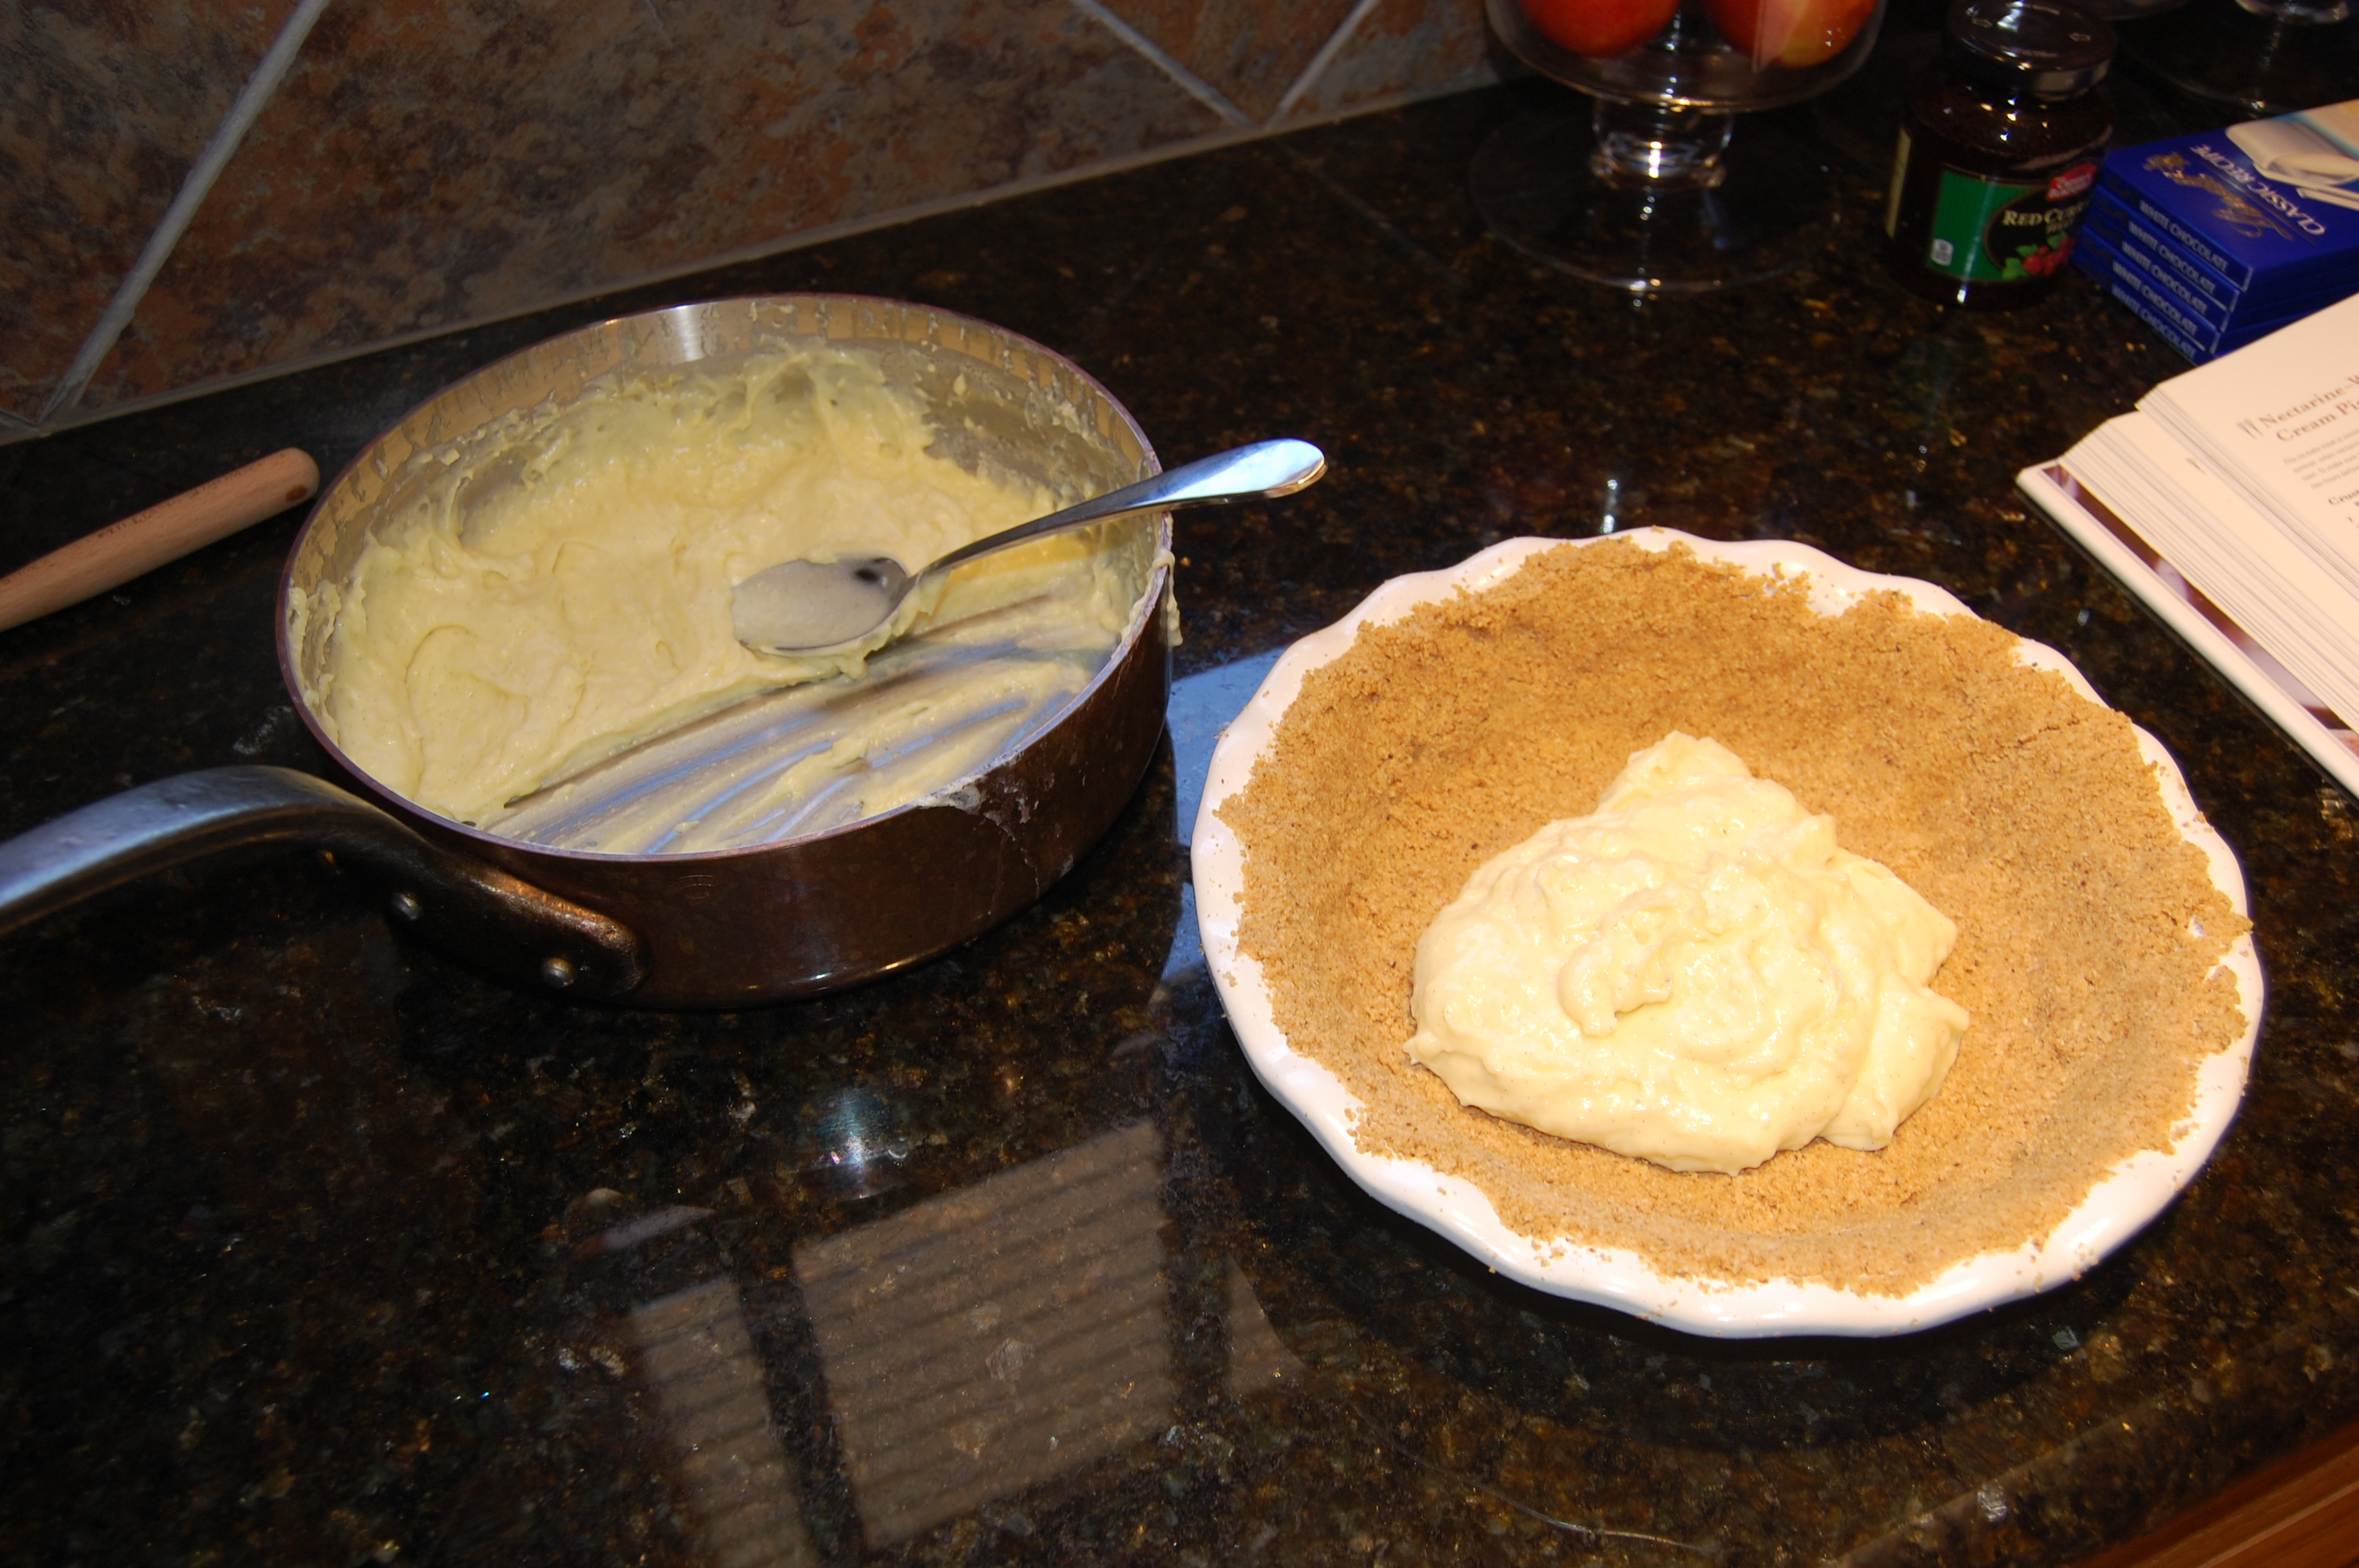 Fill the Base of the White Chocolate Cream Pie